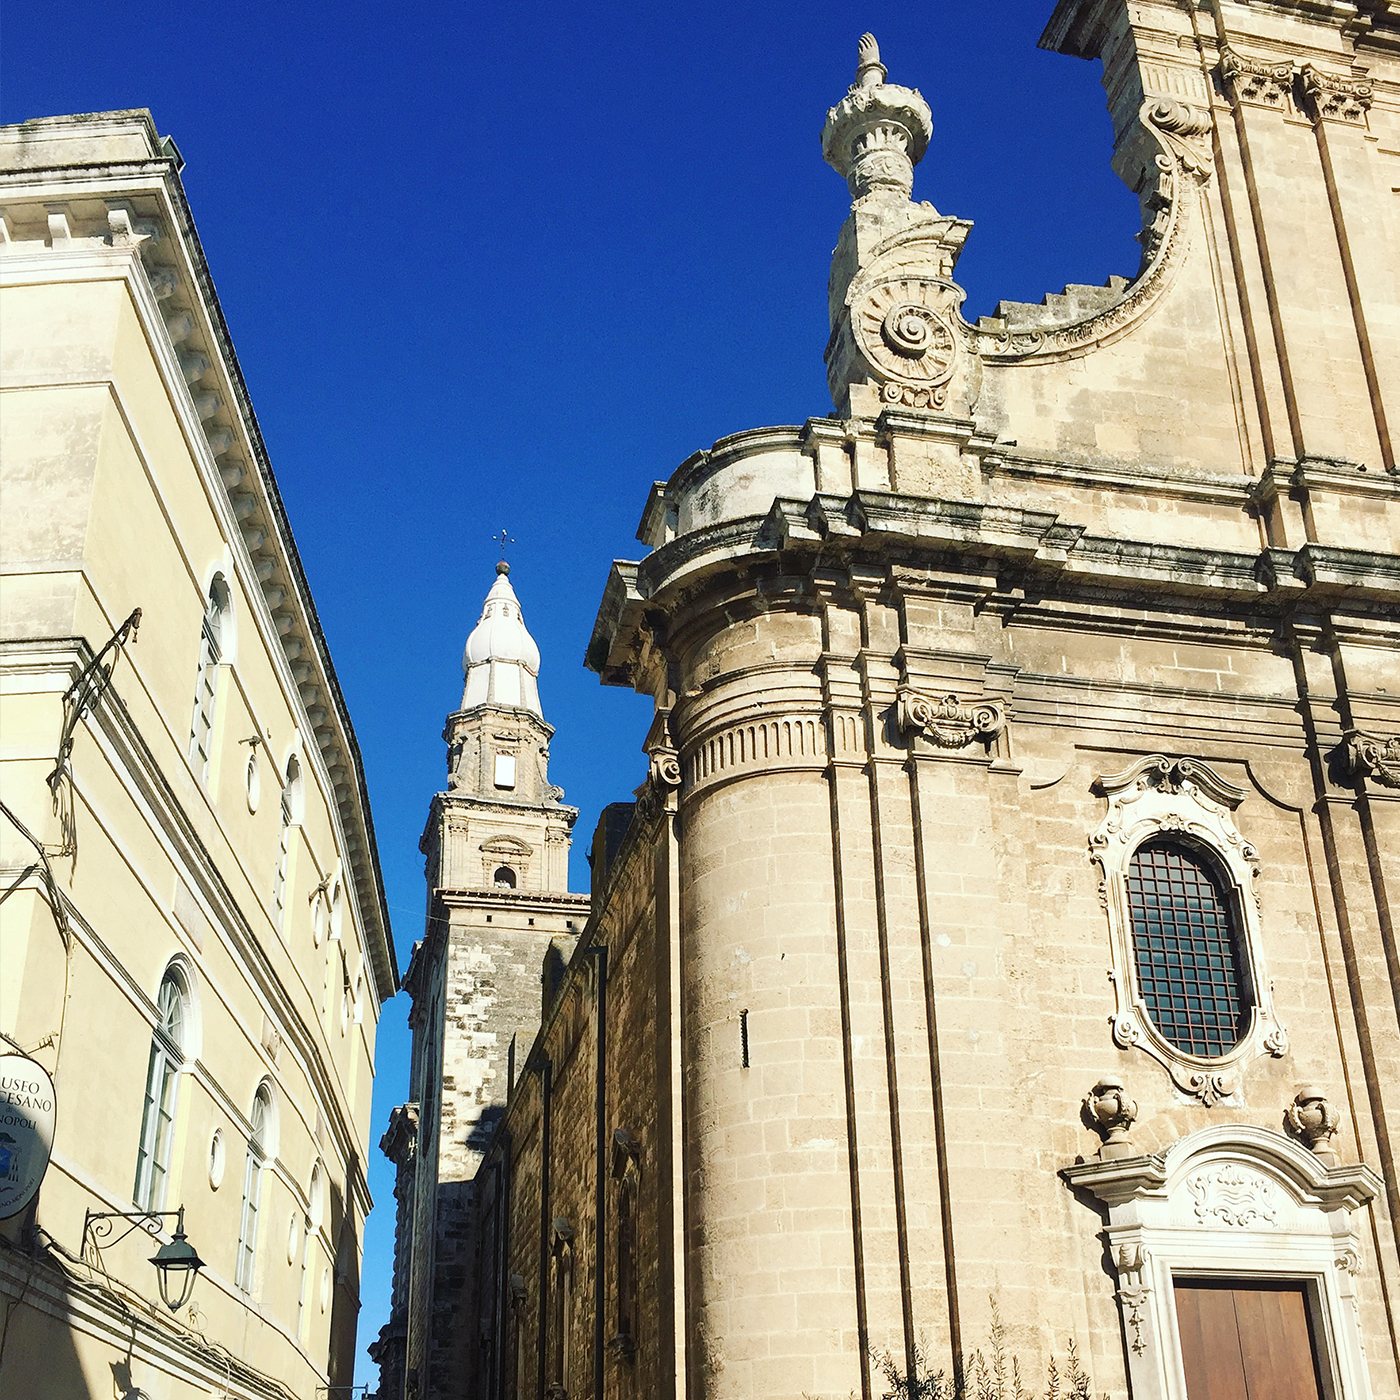 Monopoli has over 20 churches in its small centro storico. This is the cathedral